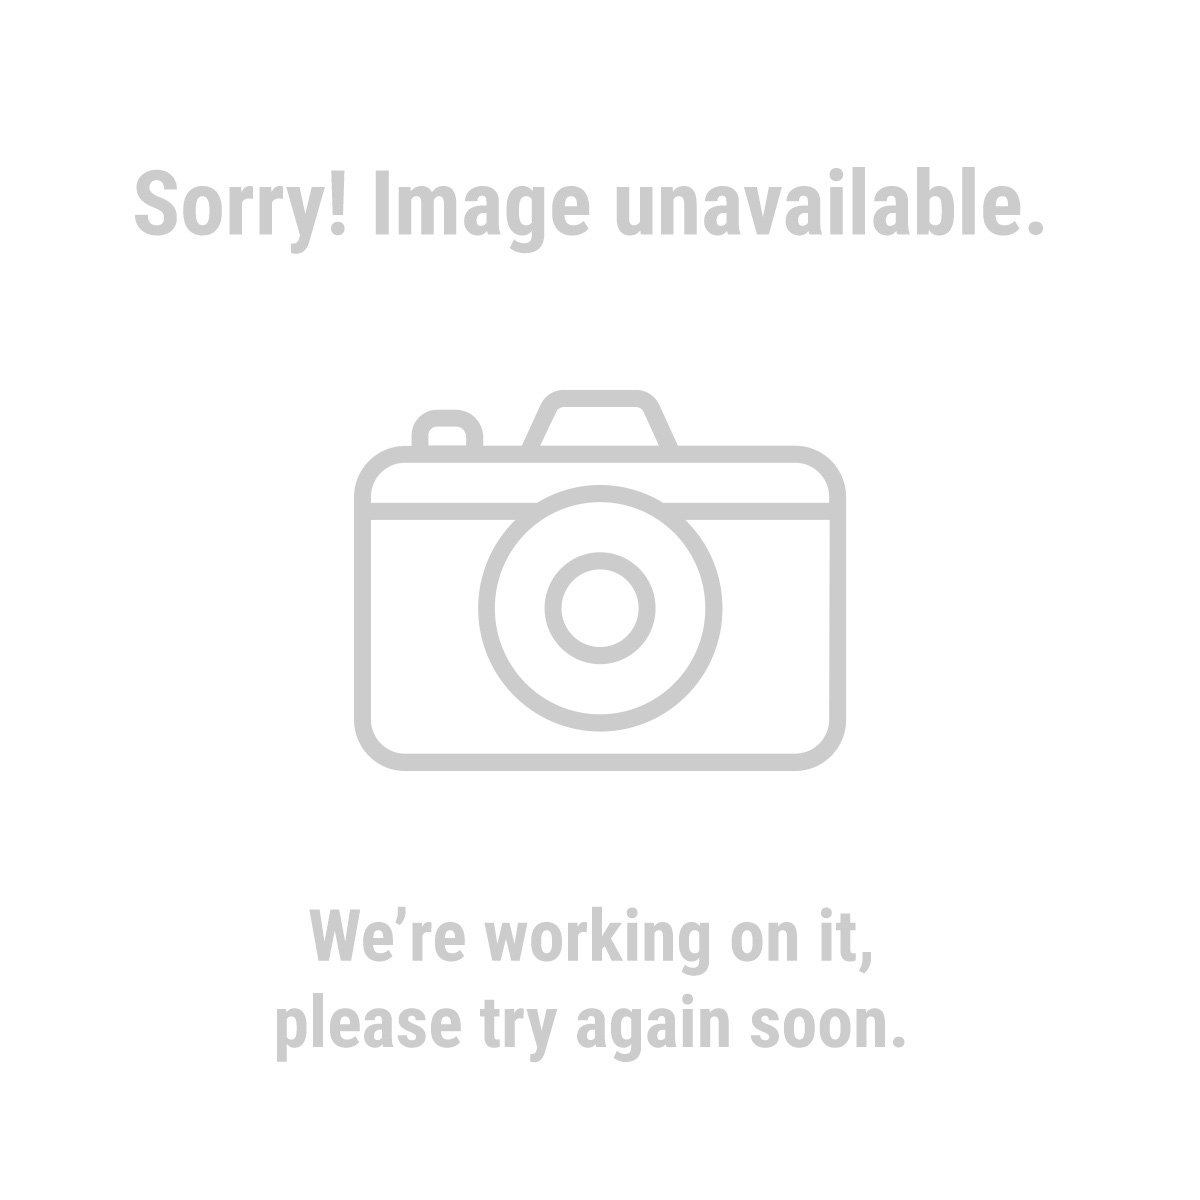 Western Safety 94875 2 Piece Yellow Rain Suit, X-Large